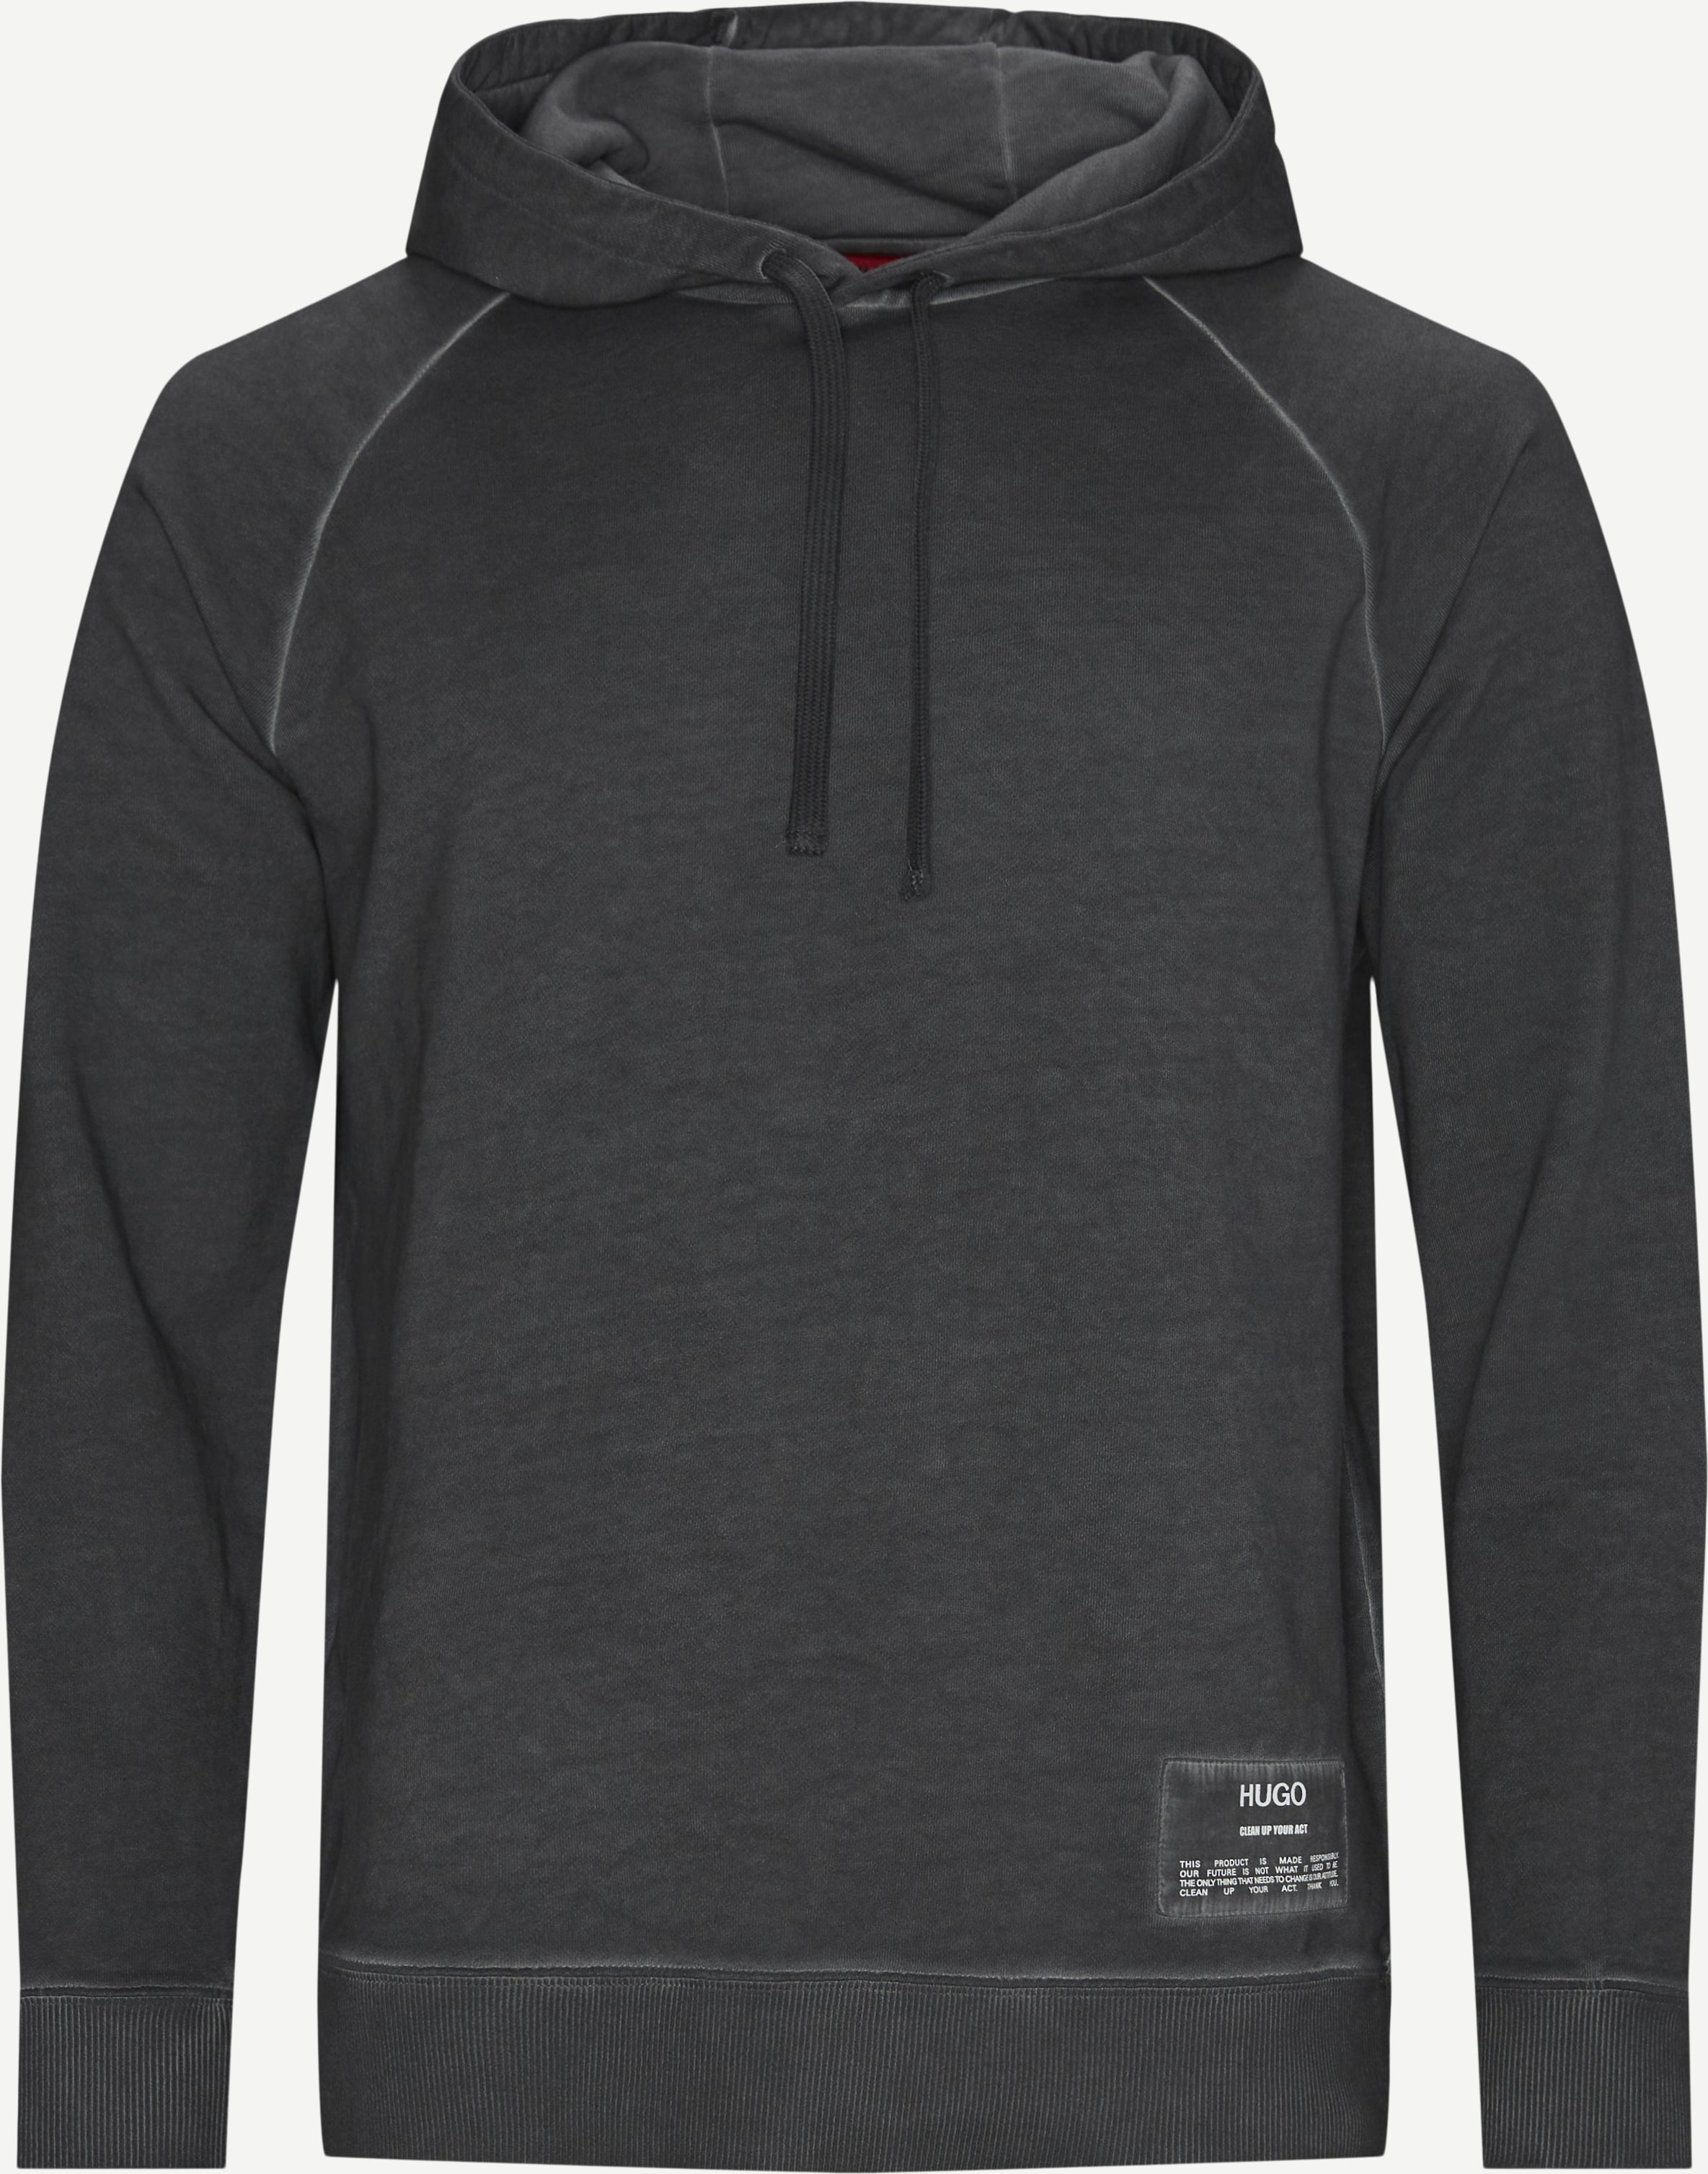 Dersh Hooded Sweatshirt - Sweatshirts - Regular - Grå